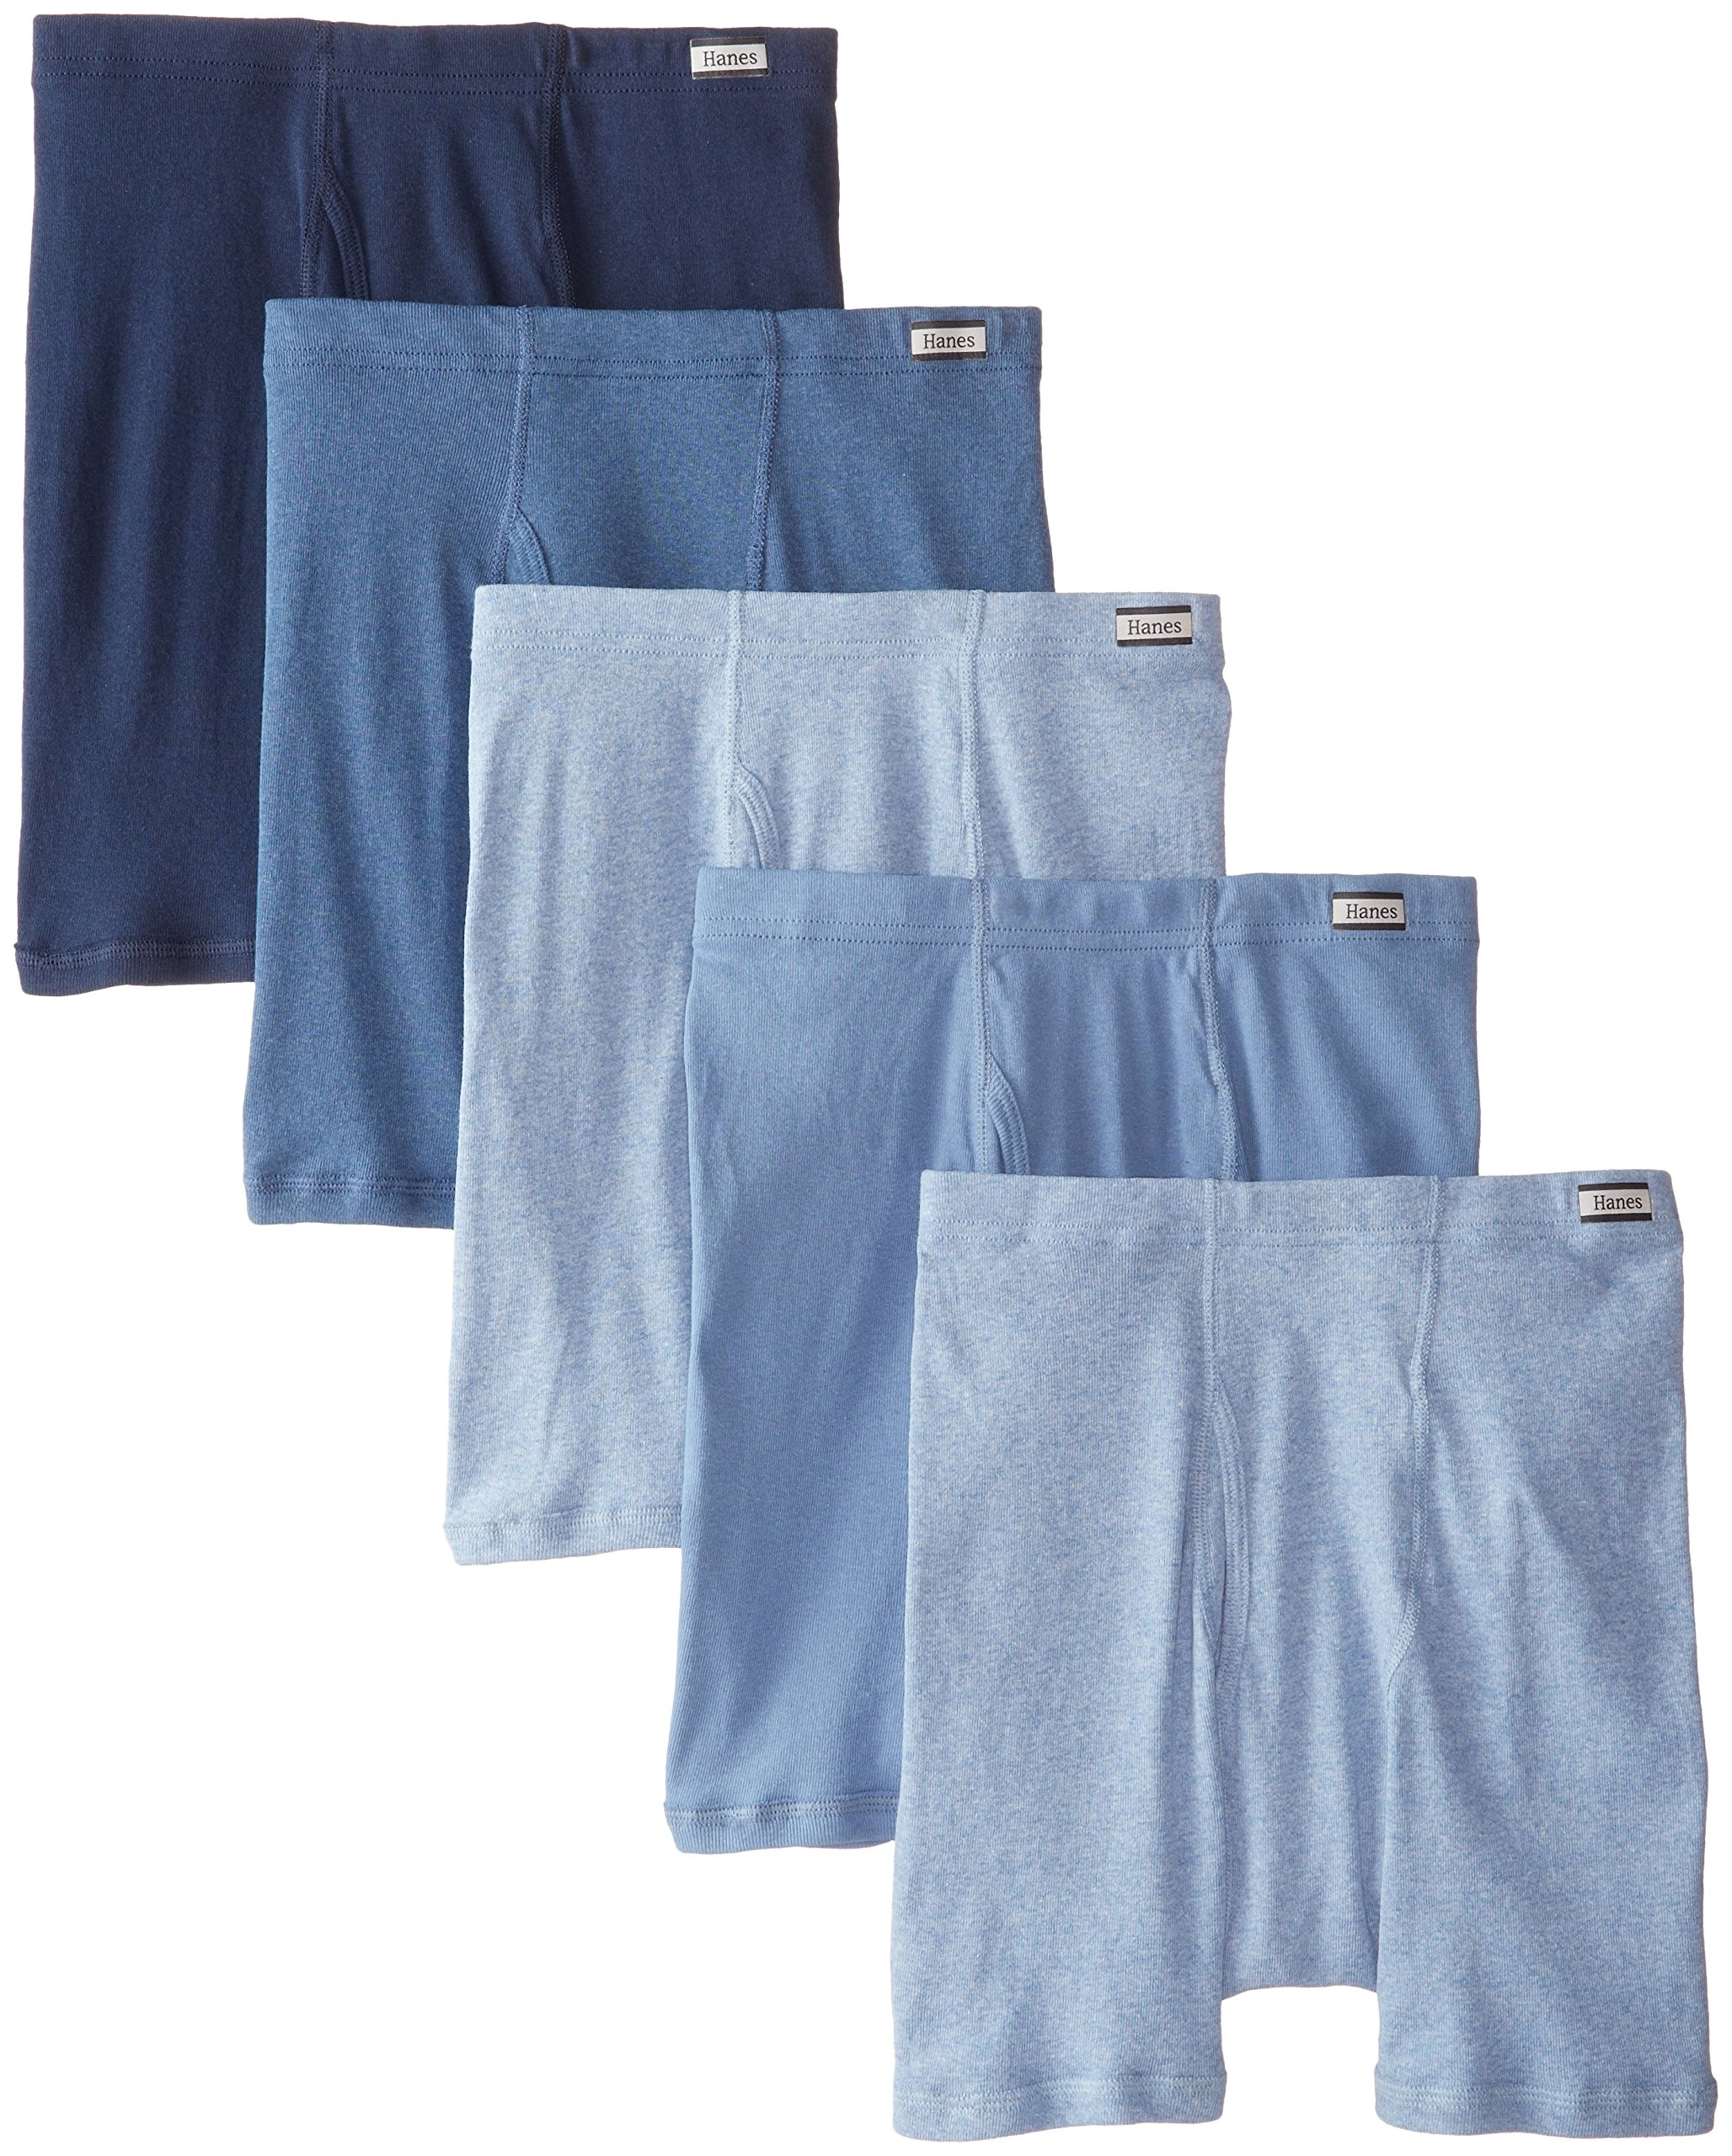 Hanes Men`s TAGLESS Boxer Briefs with ComfortSoft Waistband,7460Z5,L,Assorted(5-pack)